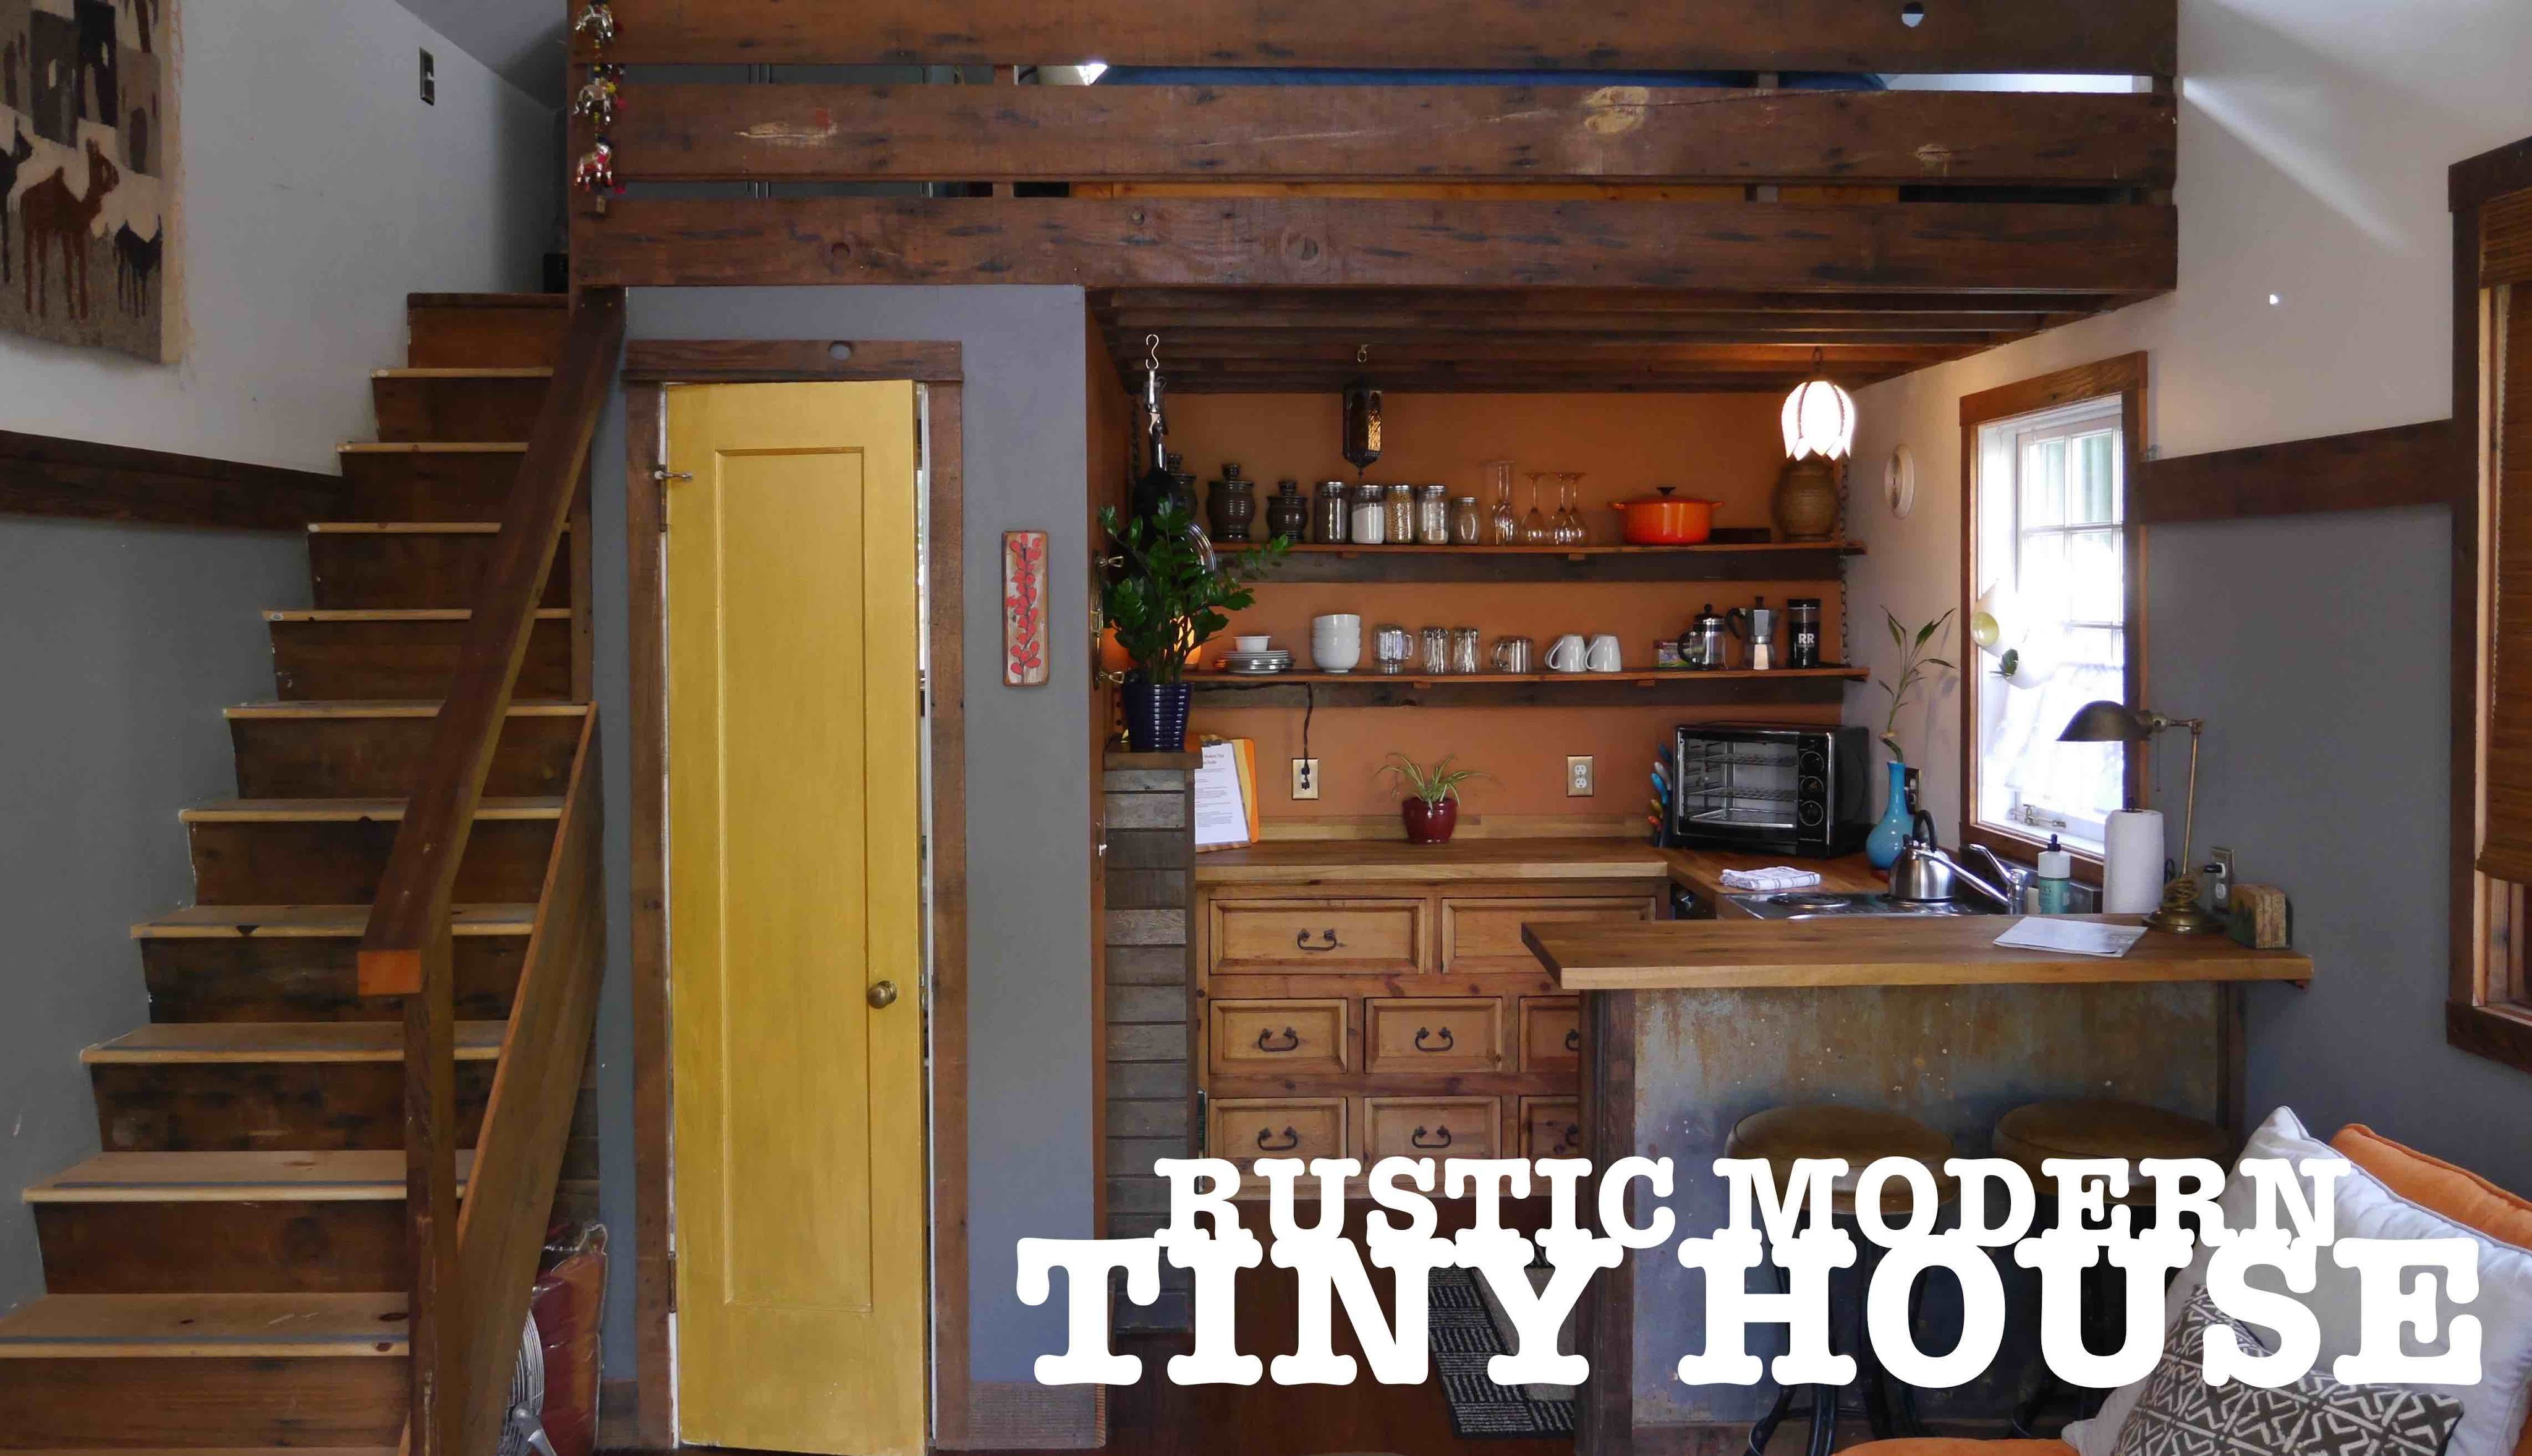 Garage turned into a tiny house the rustic modern in for Small house with garage